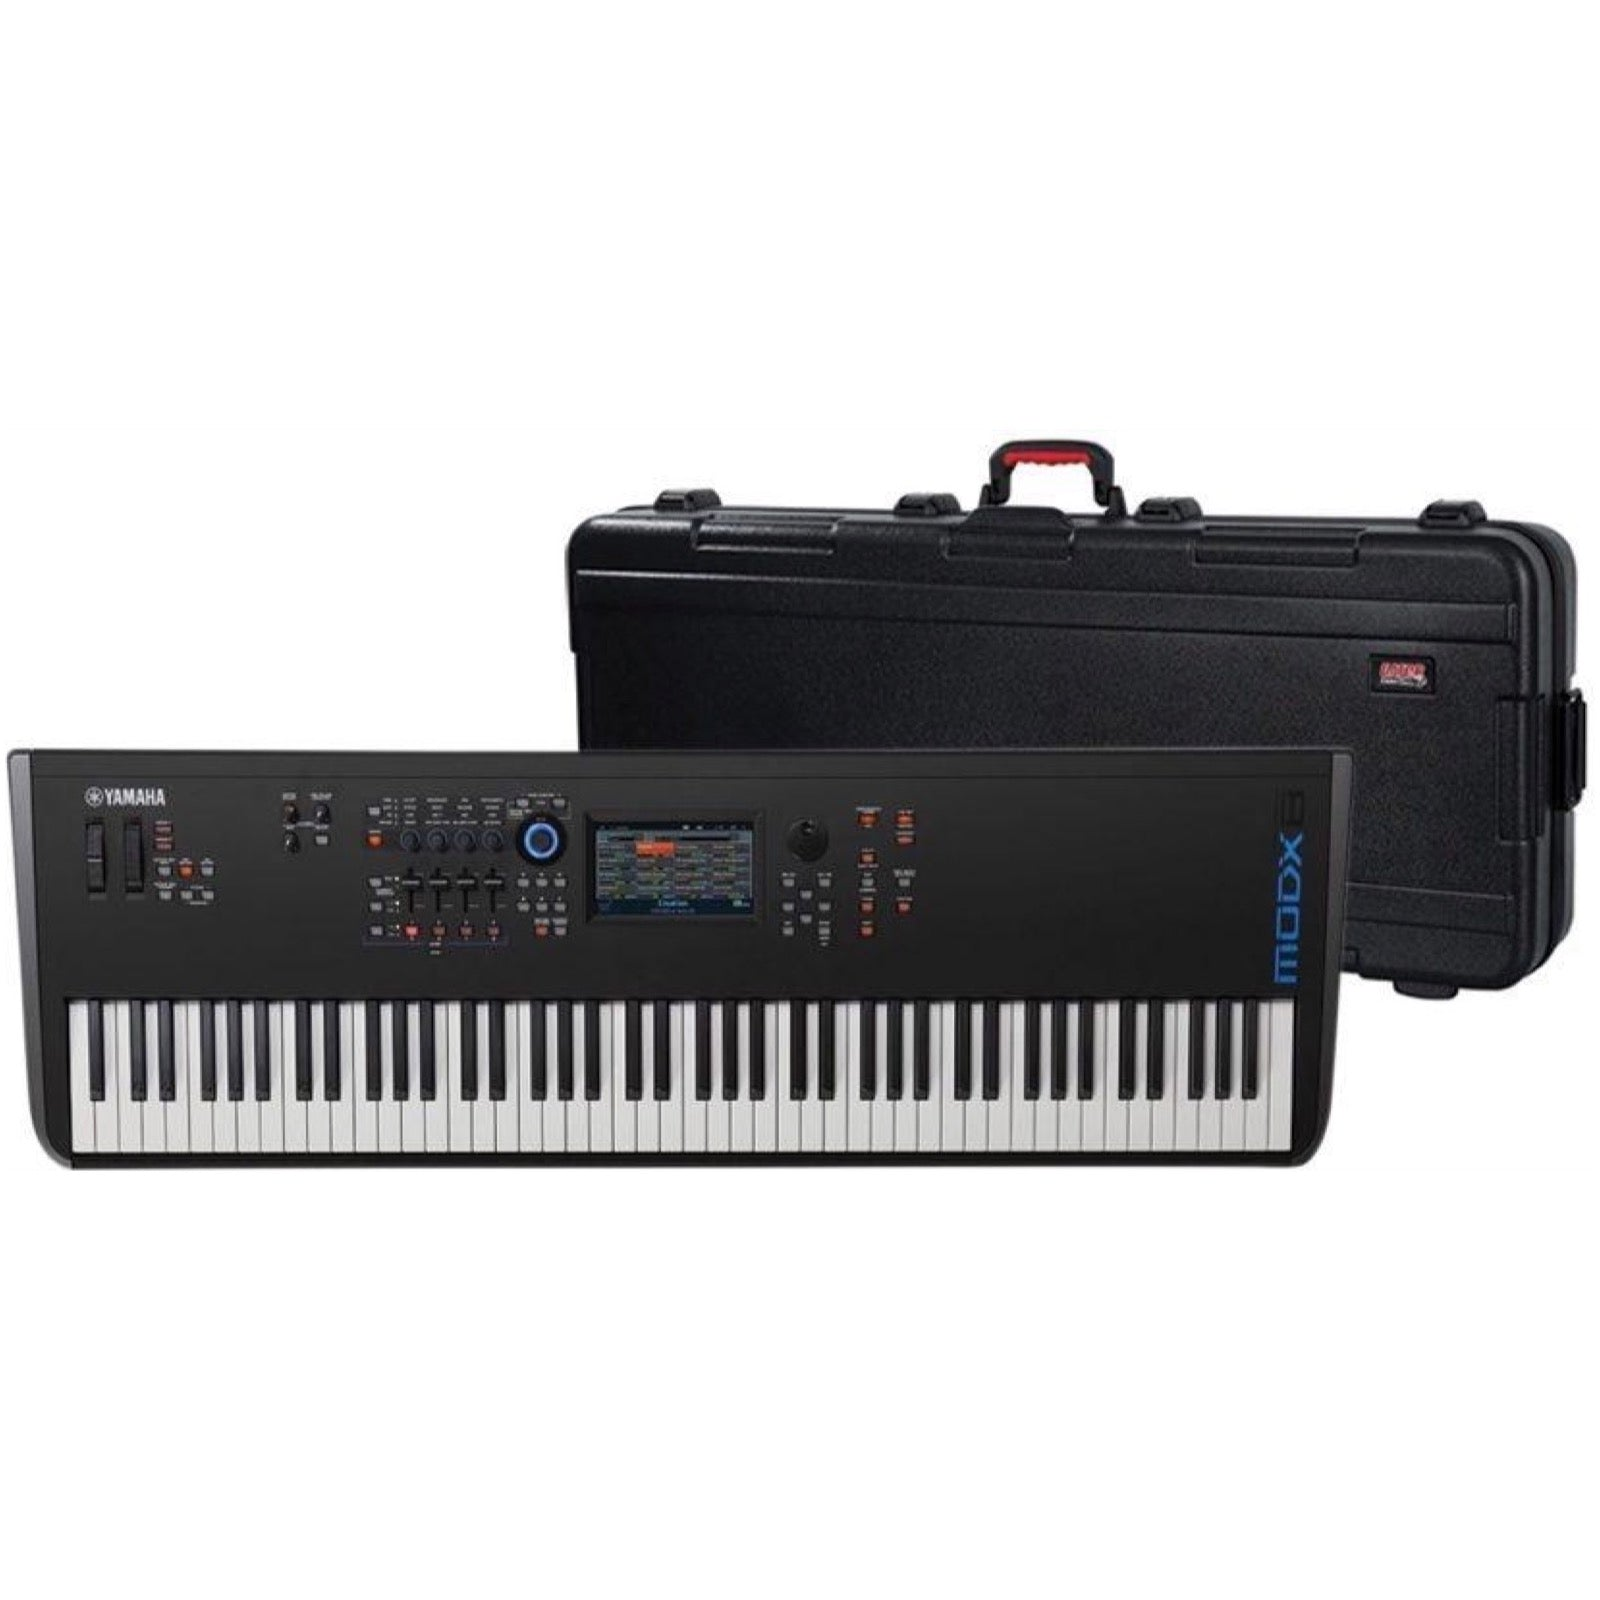 Yamaha MODX8 Keyboard Synthesizer, 88-Key, with Gator Case